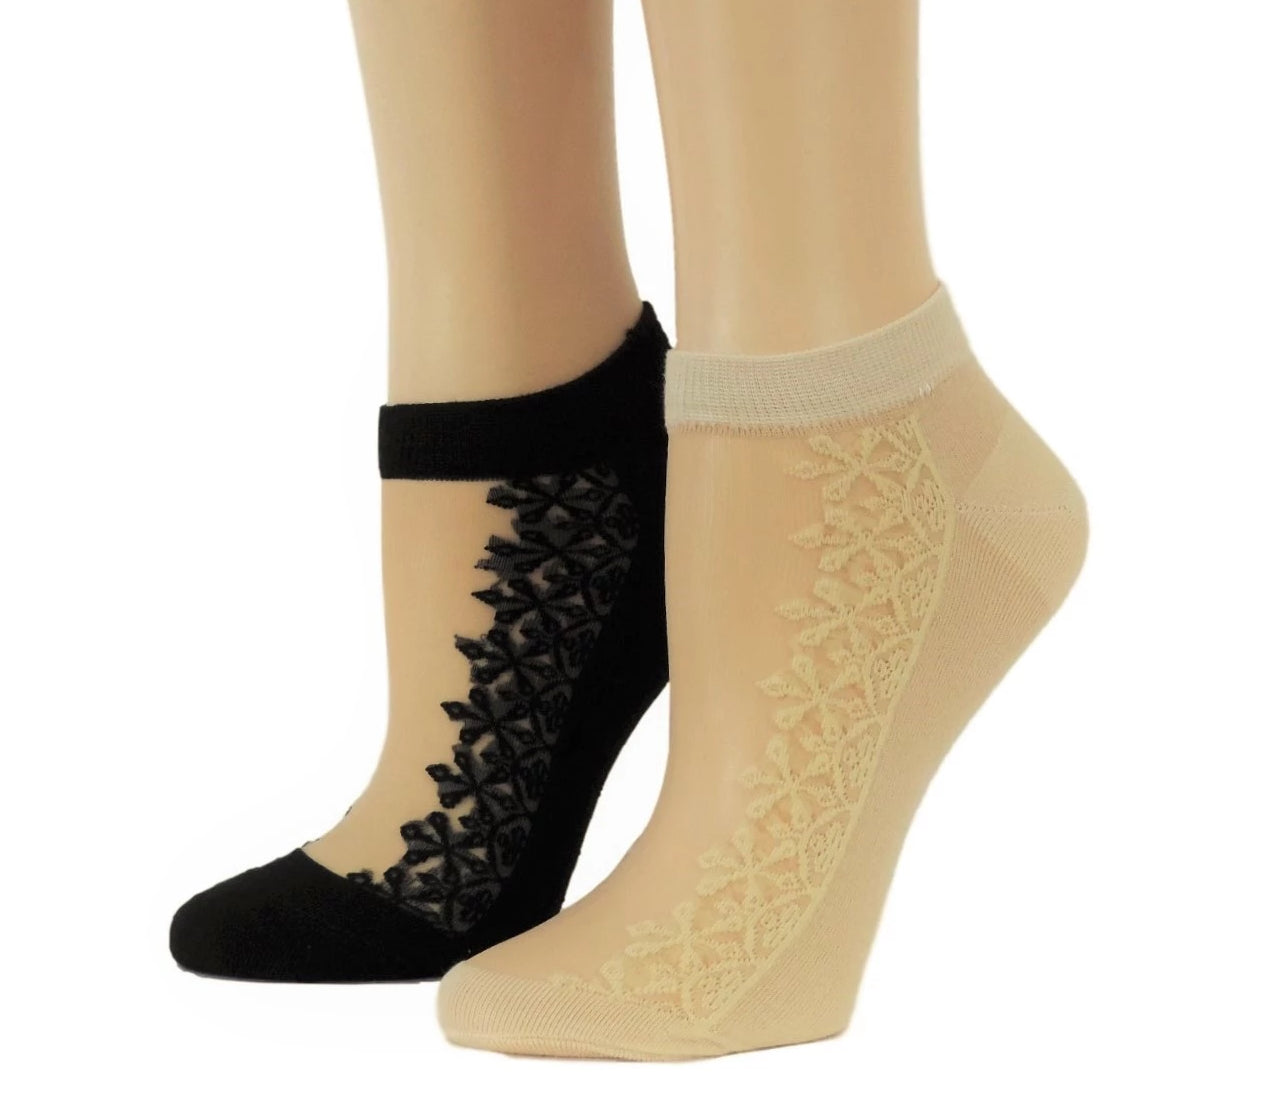 Sequence Floral Ankle Sheer Socks (Pack of 2 pairs) - Global Trendz Fashion®